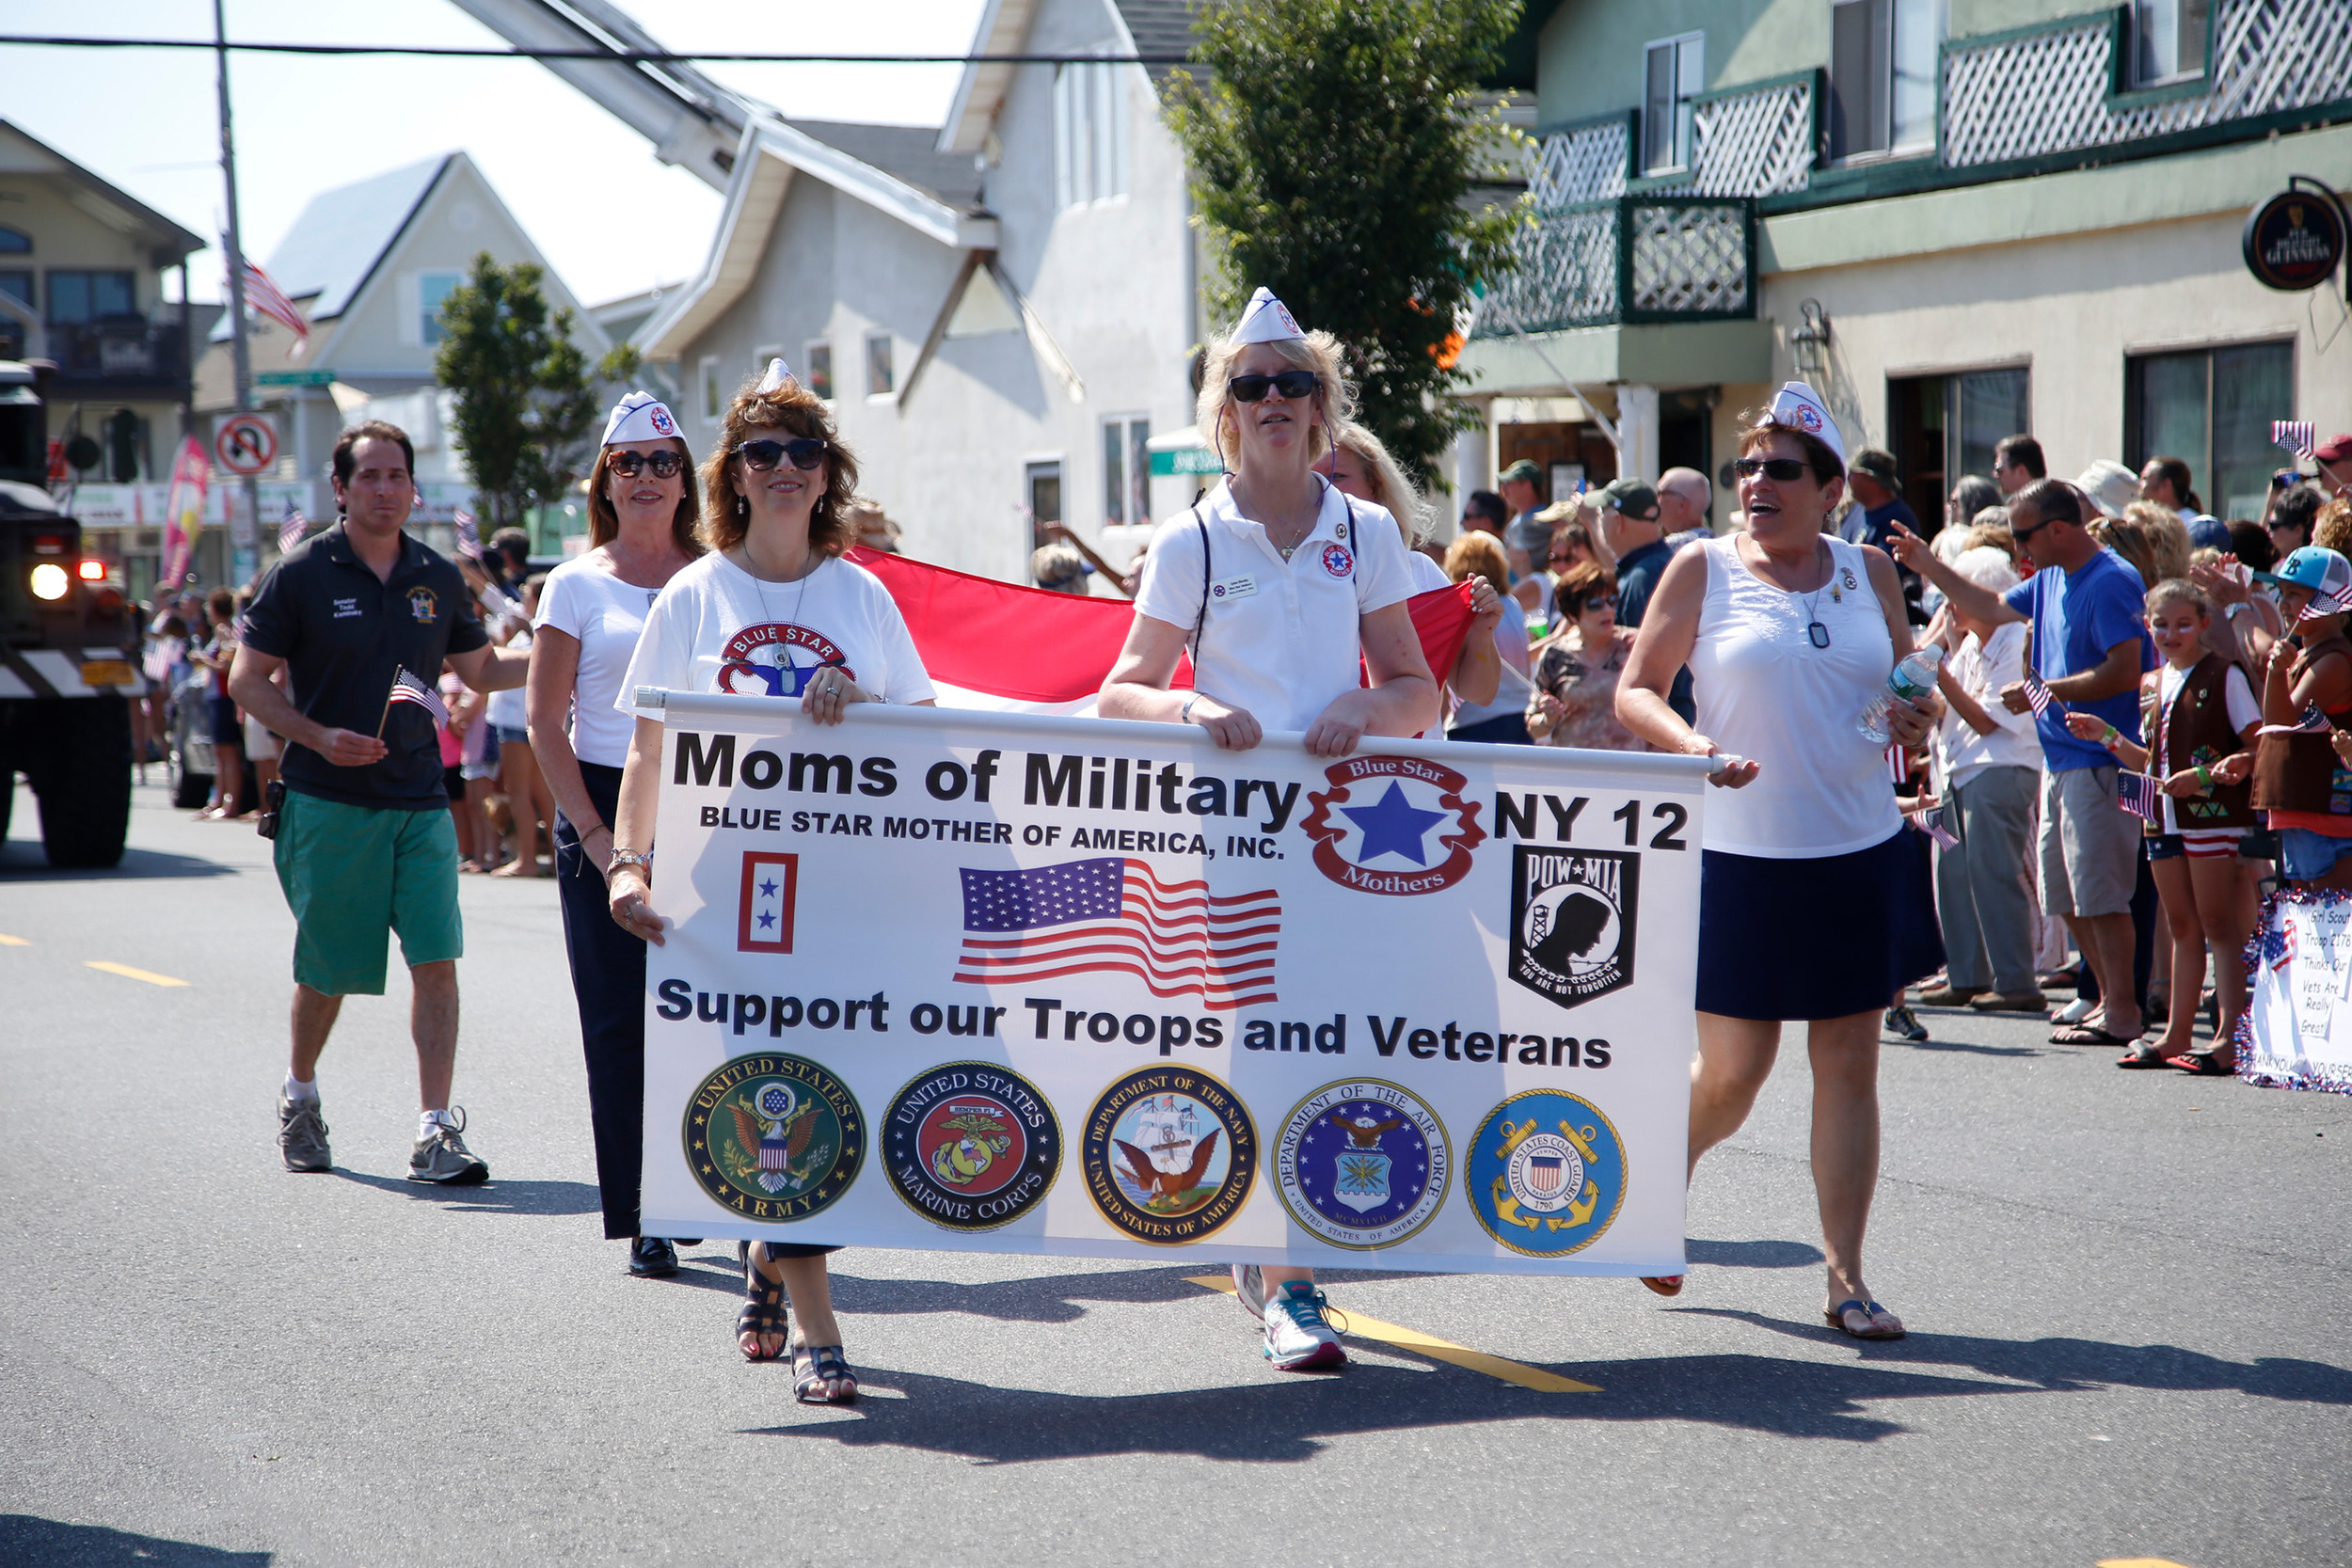 The Blue Star Mothers of America were among the many organizations that marched in the parade.